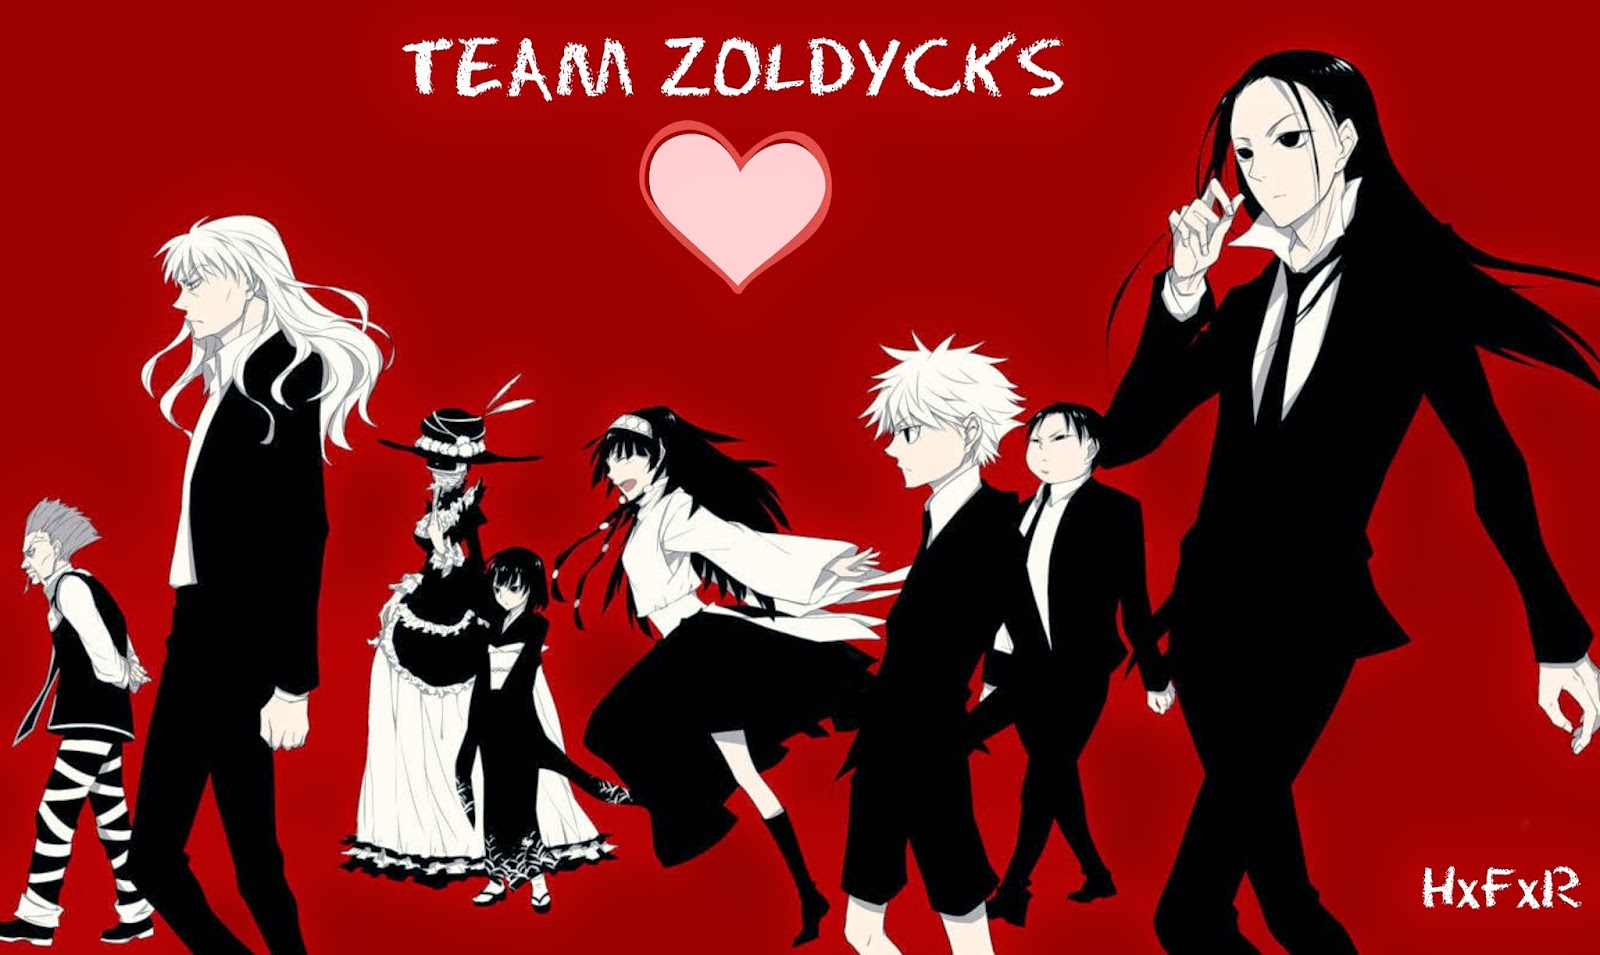 Team Zoldycks, Hunter x Hunter, Zoldyck Family, hxfxr